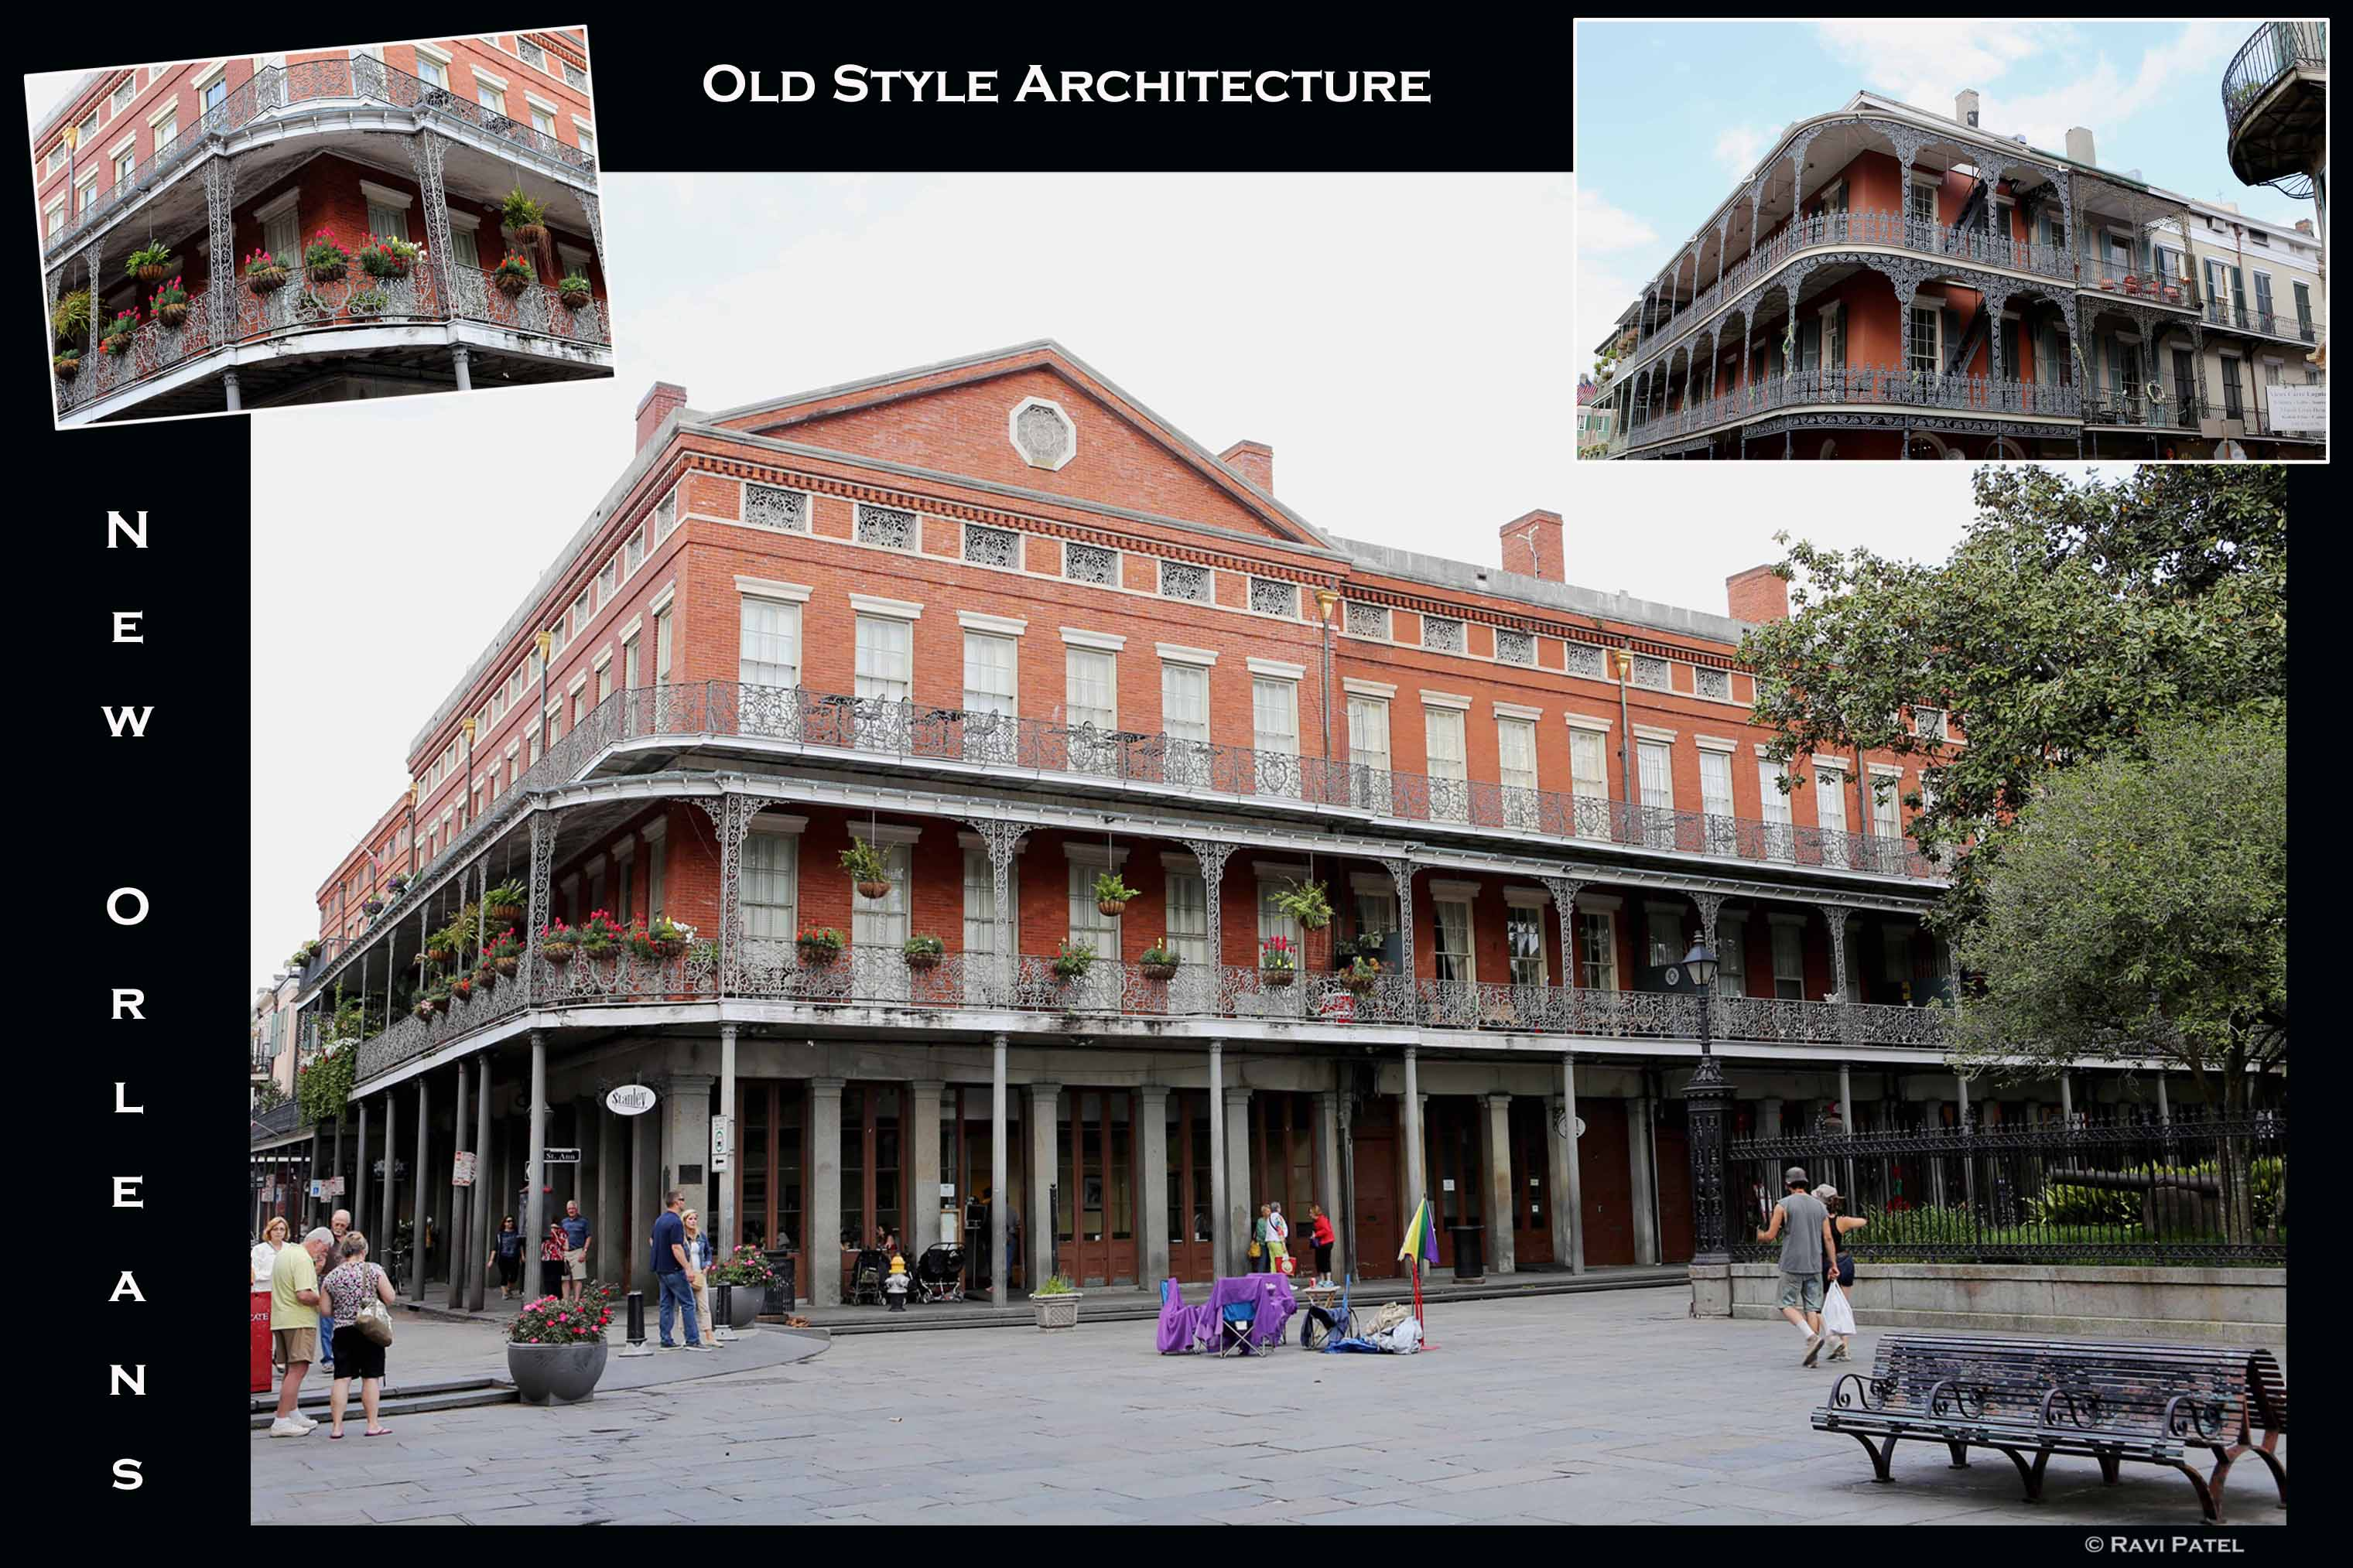 Louisiana New Orleans Old Style Architecture Photos By Ravi